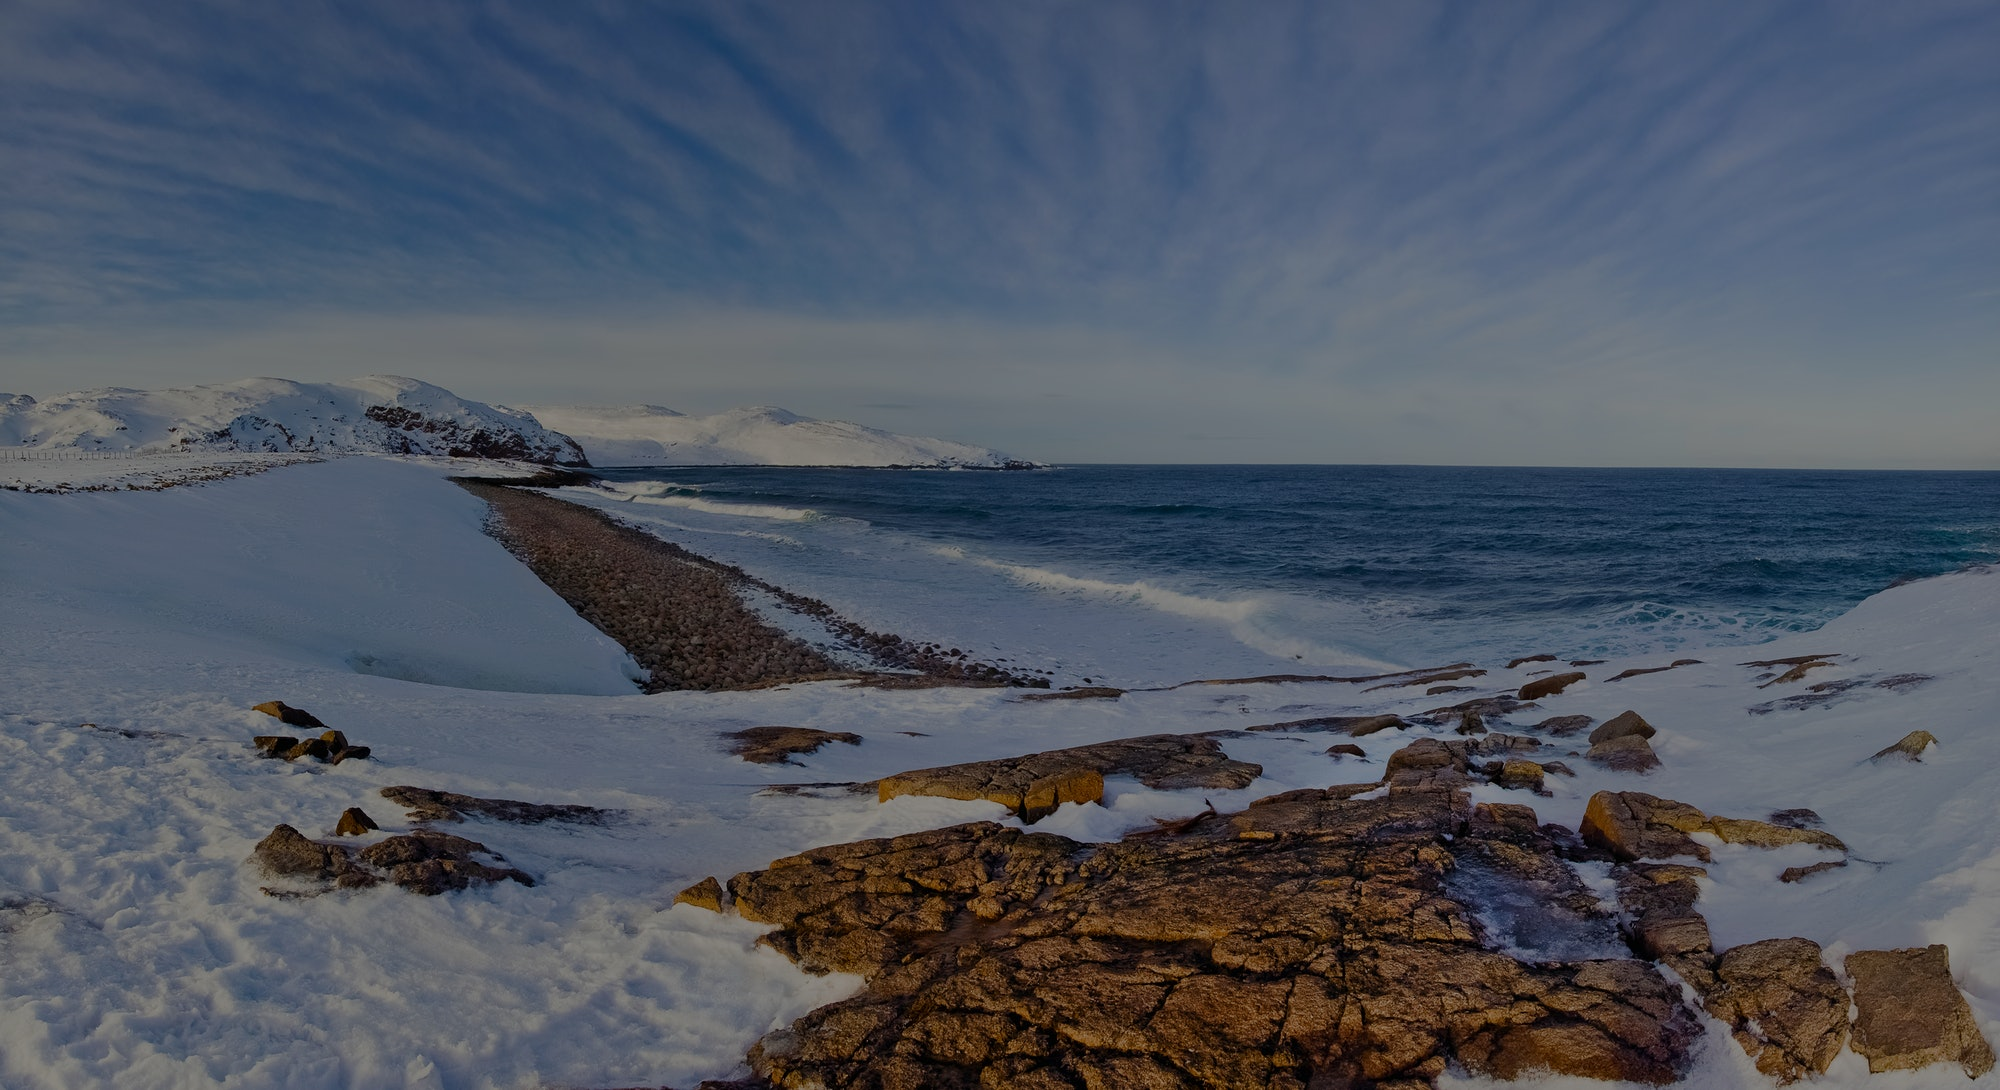 Winter storm in a sunny day in the Arctic Ocean, the Barents Sea, the settlement of Teriberka, Russia. A severe northern cold landscape with the sea, snow and stones.